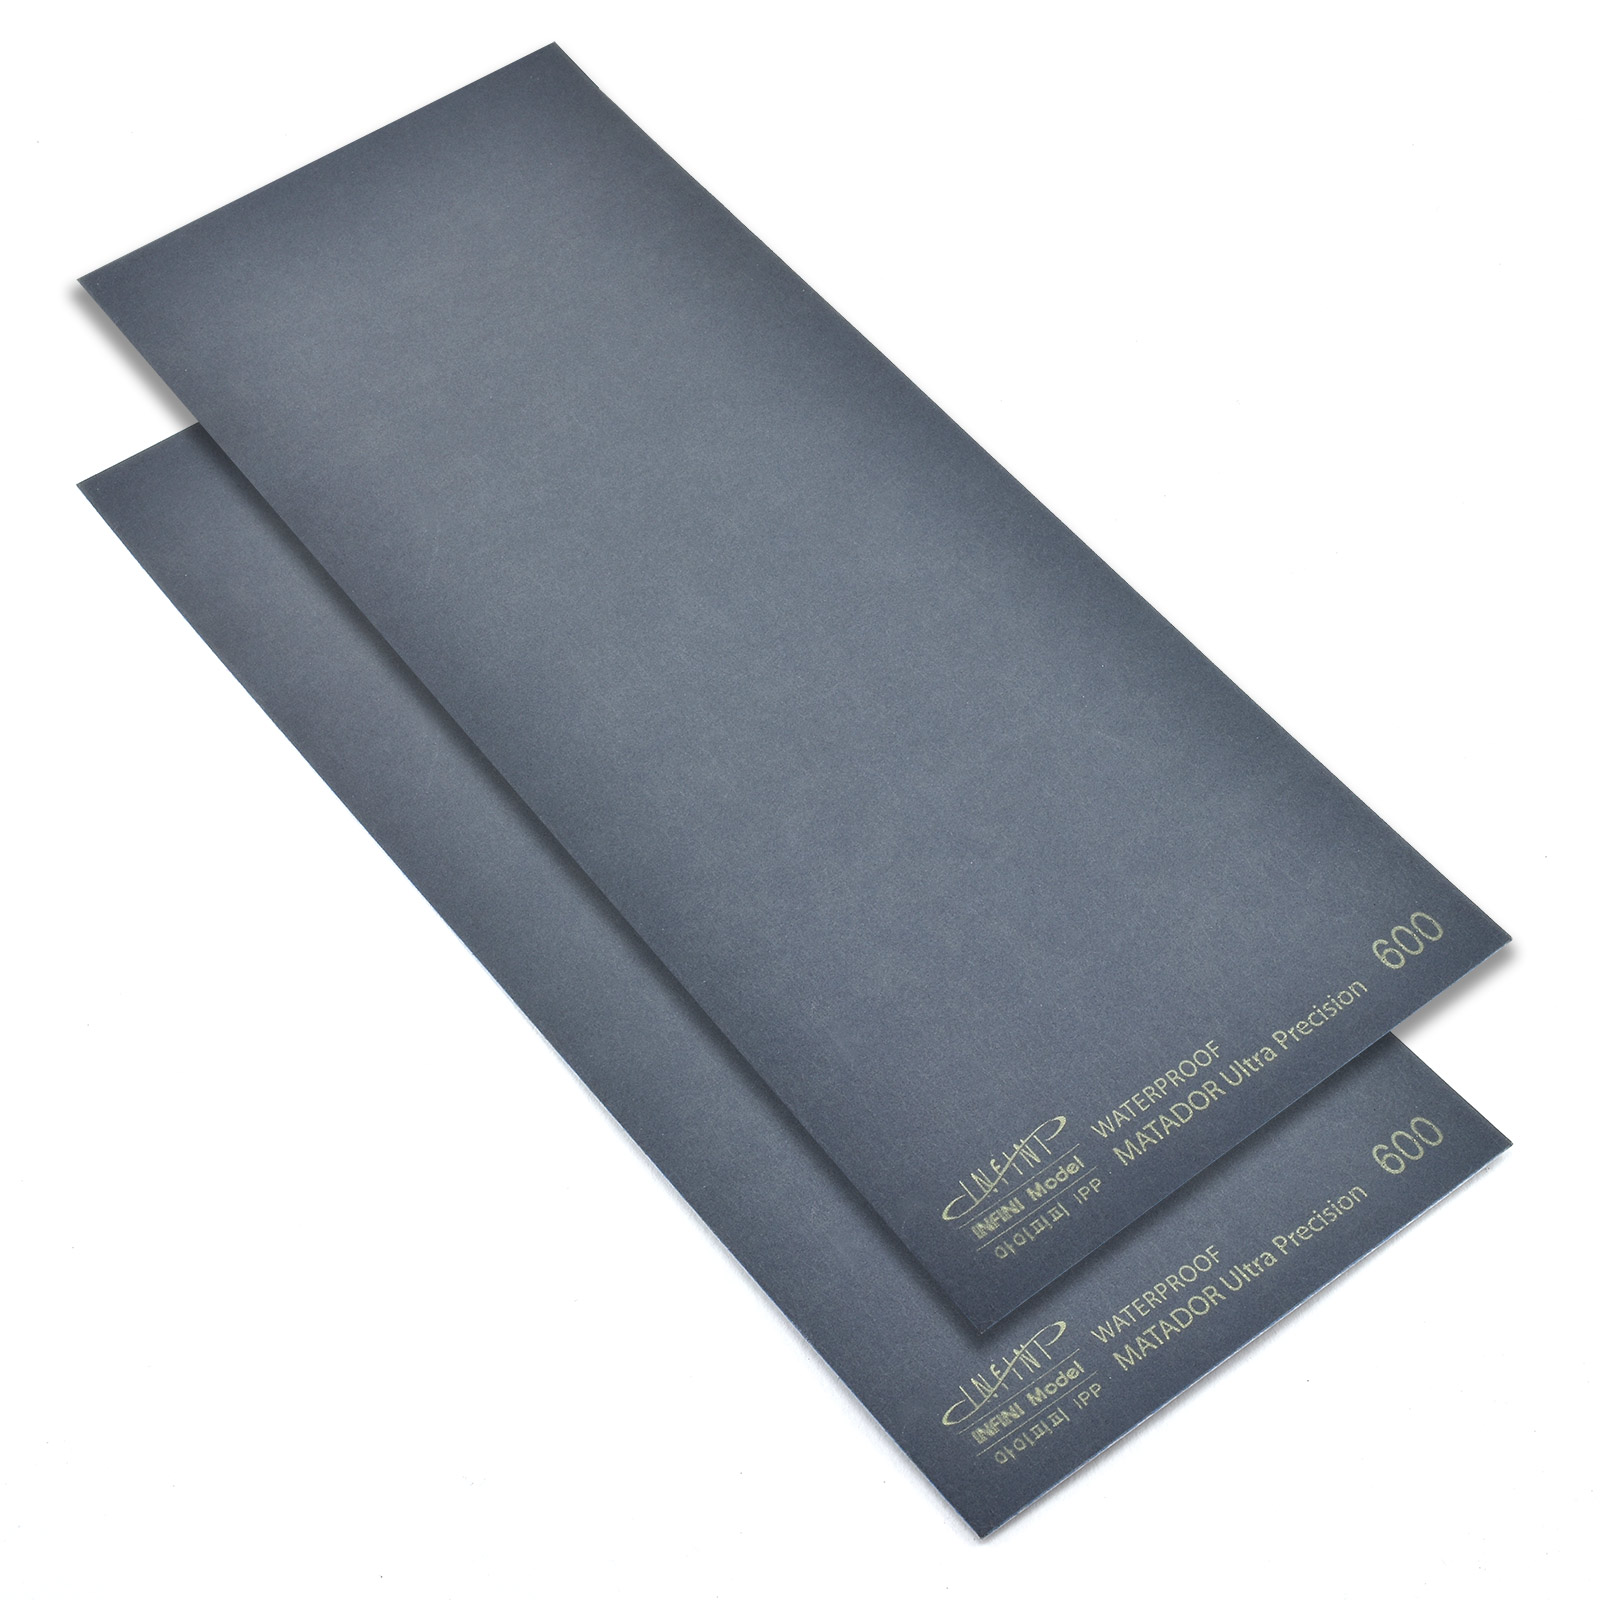 Sanding Sheet, 600 Grit, Pack of 2